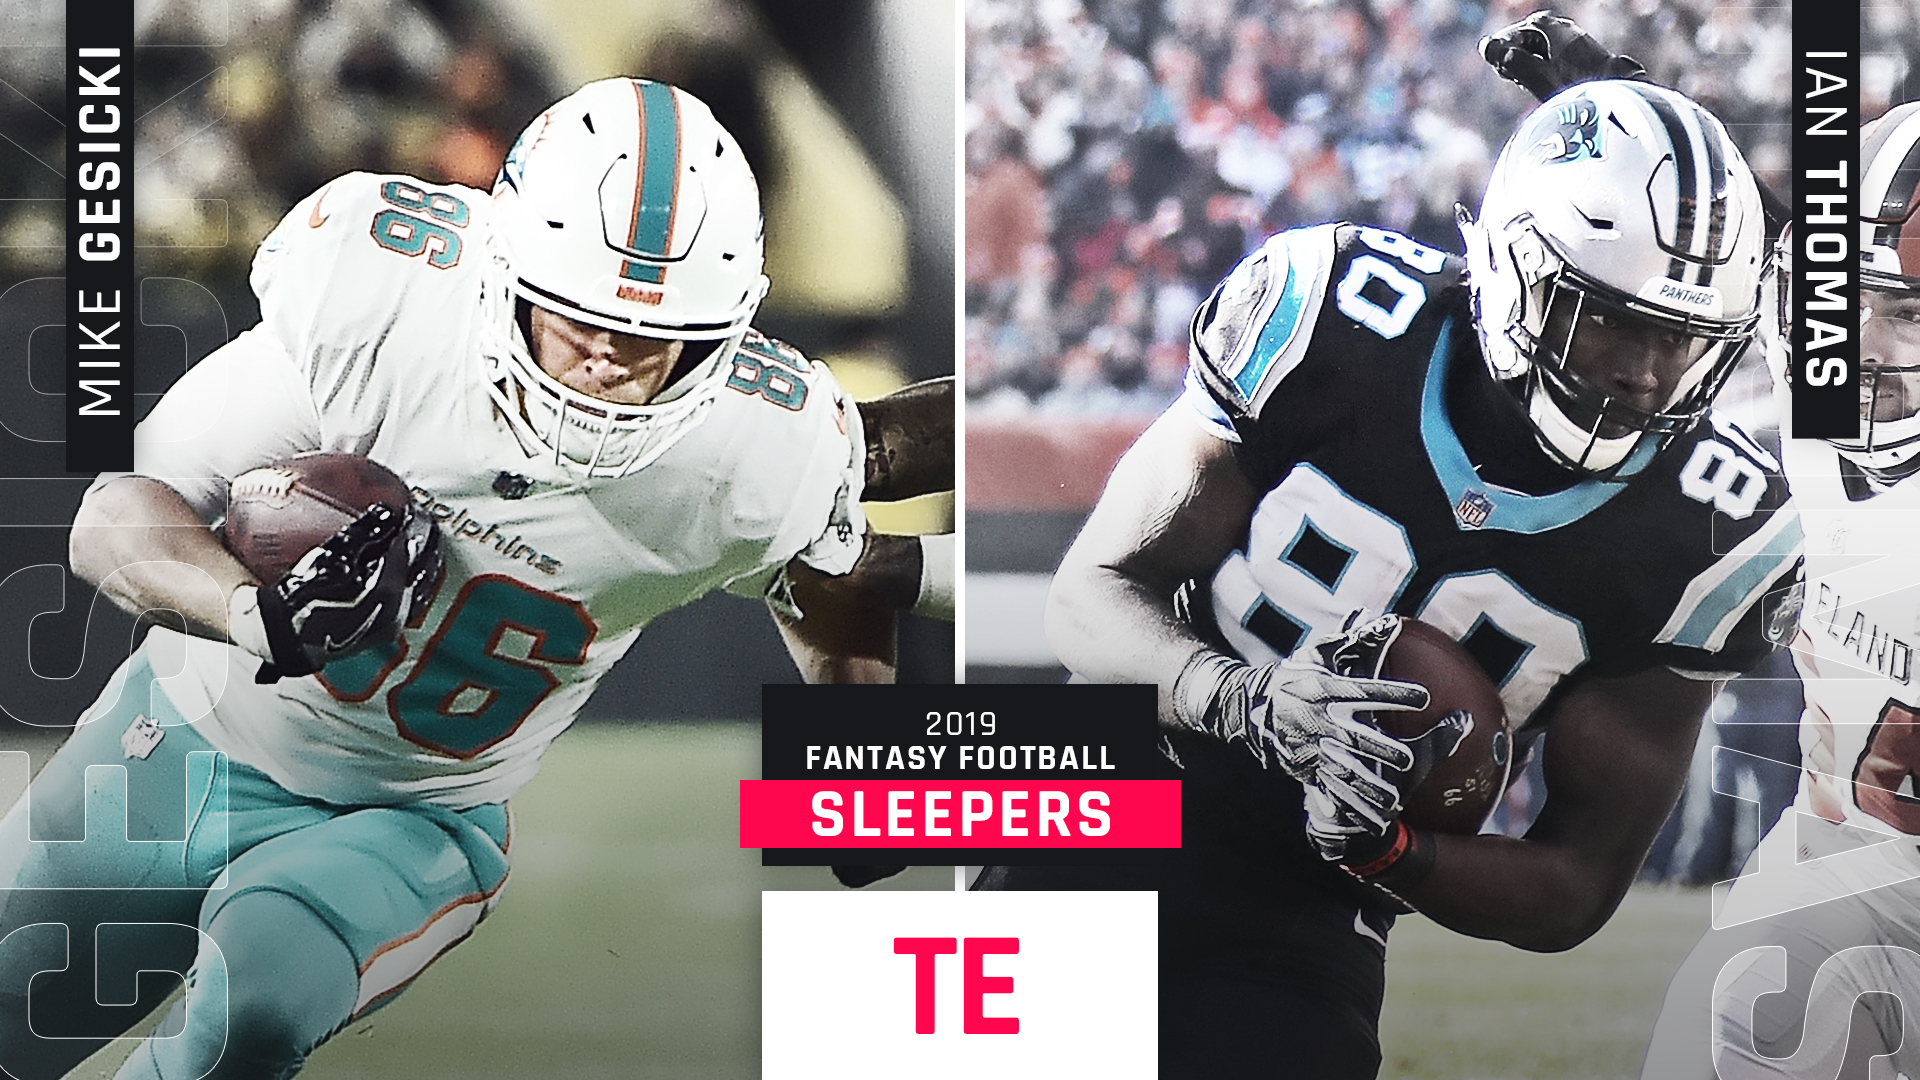 Fantasy Football Sleepers 2019 Tight Ends Sporting News